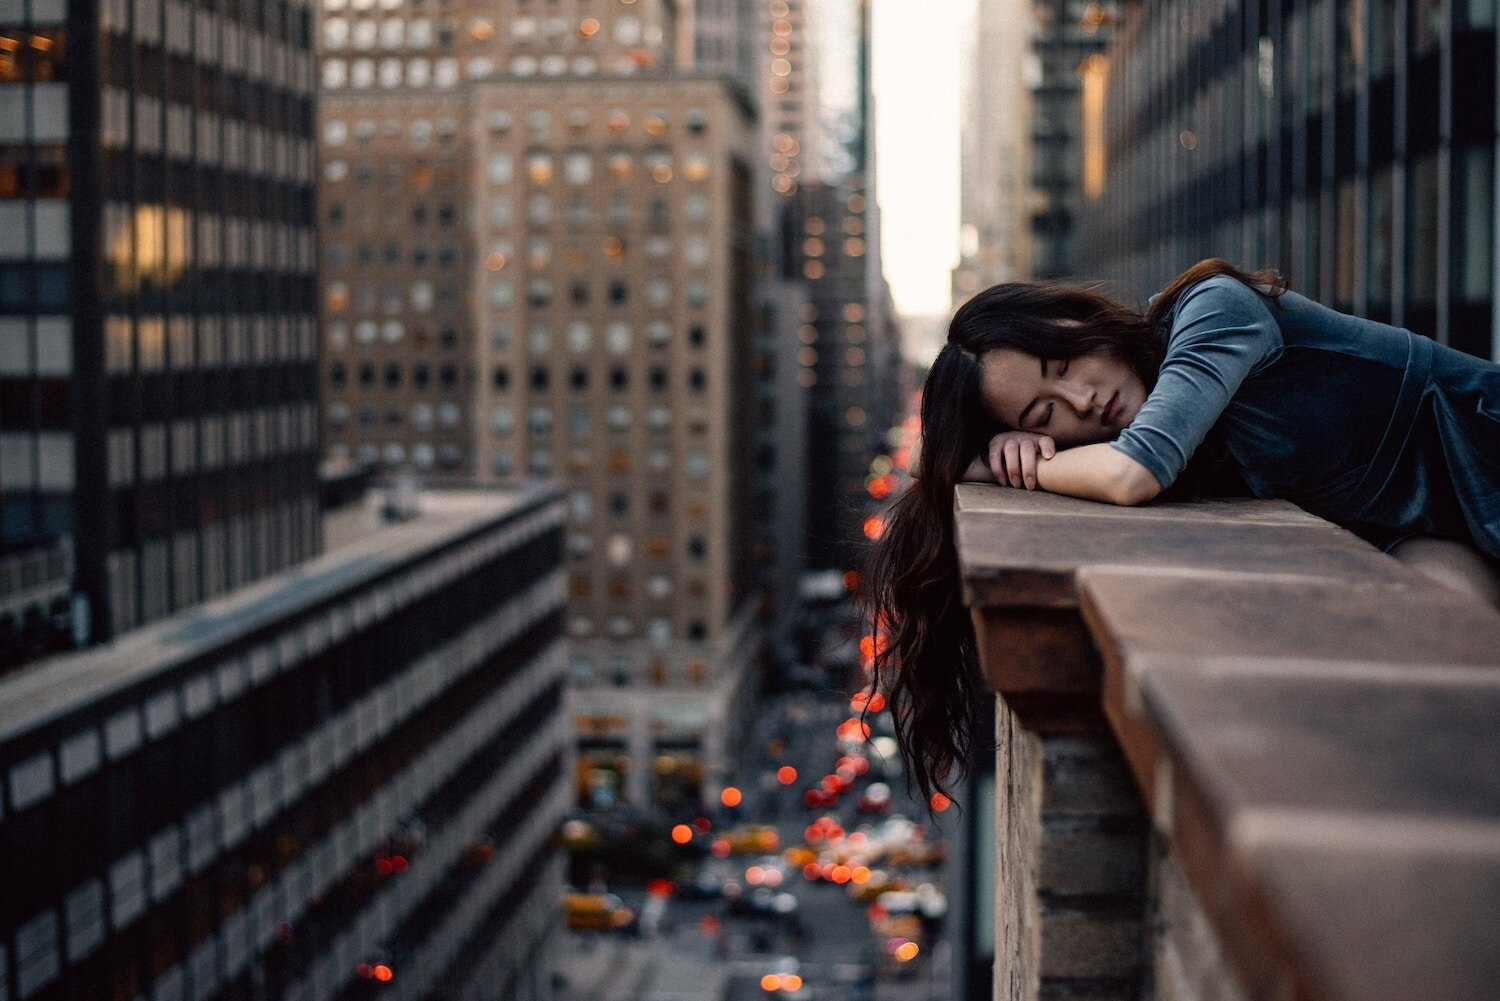 woman lying with her head on the ledge traffic in the background.jpg